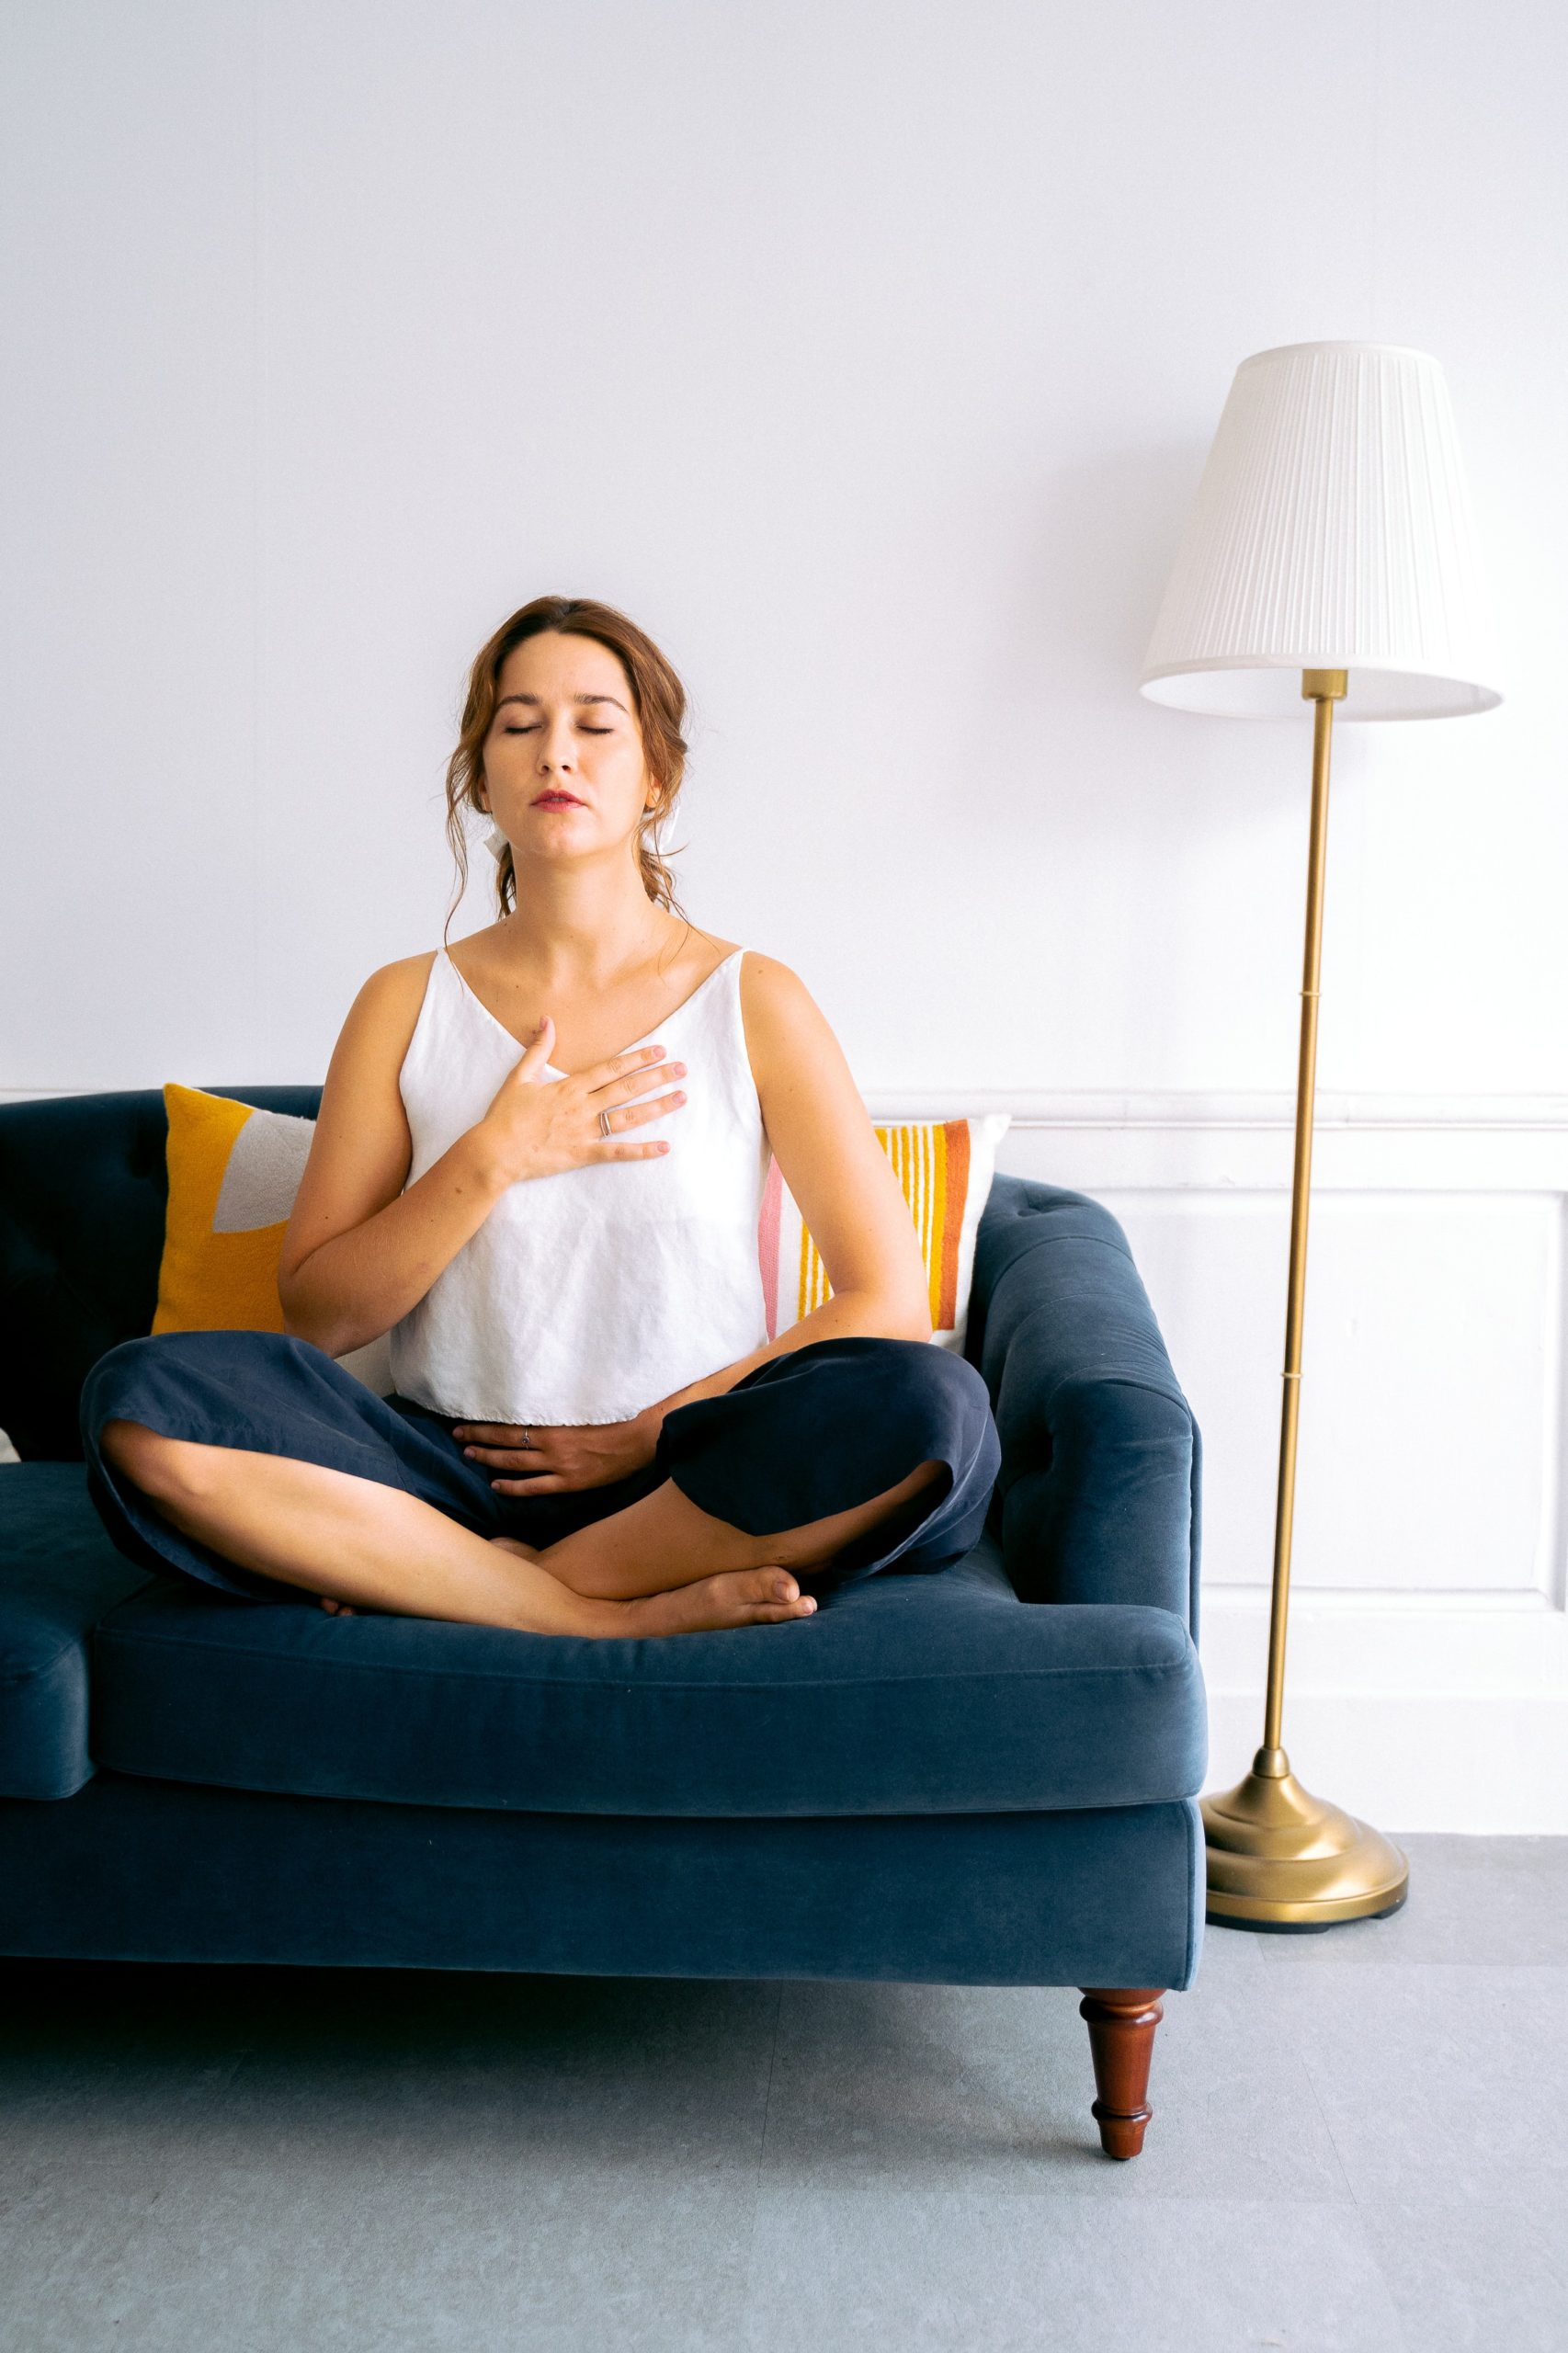 Breathing Exercises to Help You Focus and Reduce Stress